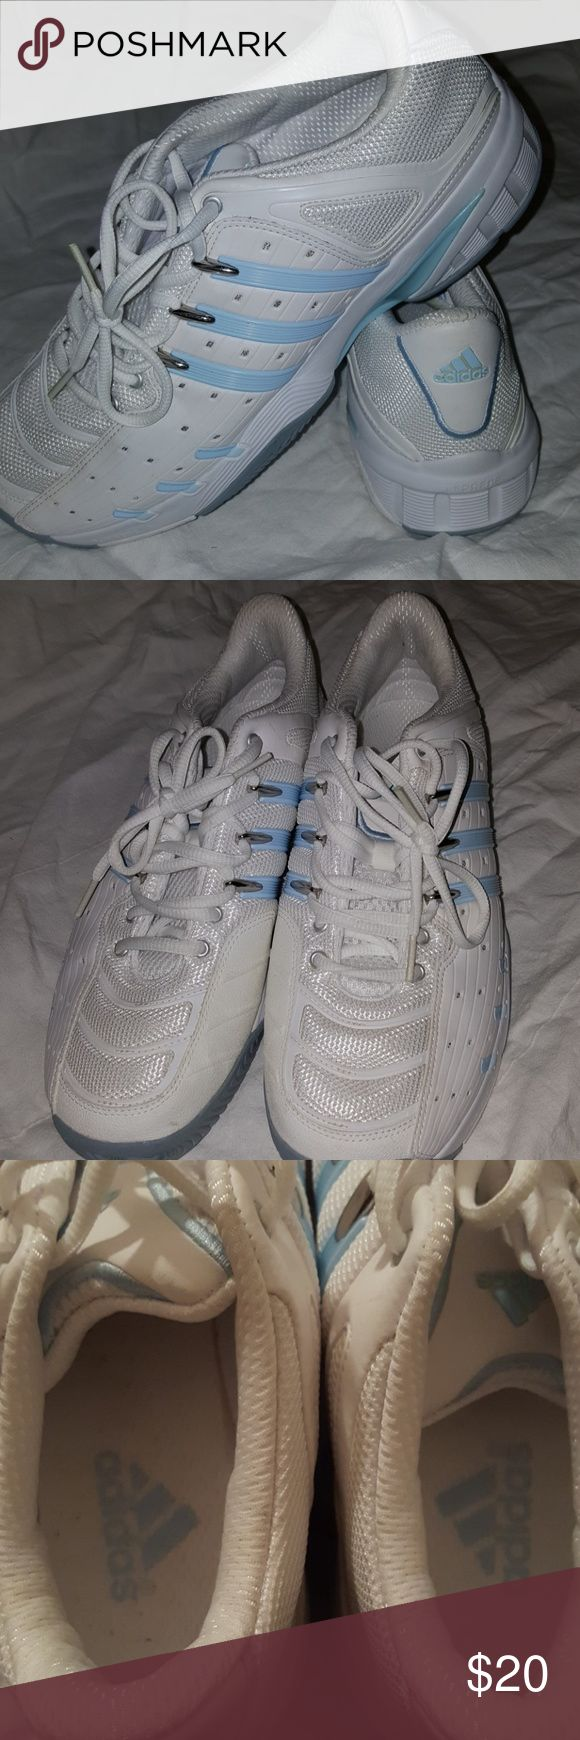 Adidas Sneakers Adidas Sneakers for walking or cross training. Worn only once and were too small for me!! Basically new and need someone to use them in 2018!! Kick off the New Year with new sneaks!! Very cushioned and have light blue accents. adidas Shoes Athletic Shoes